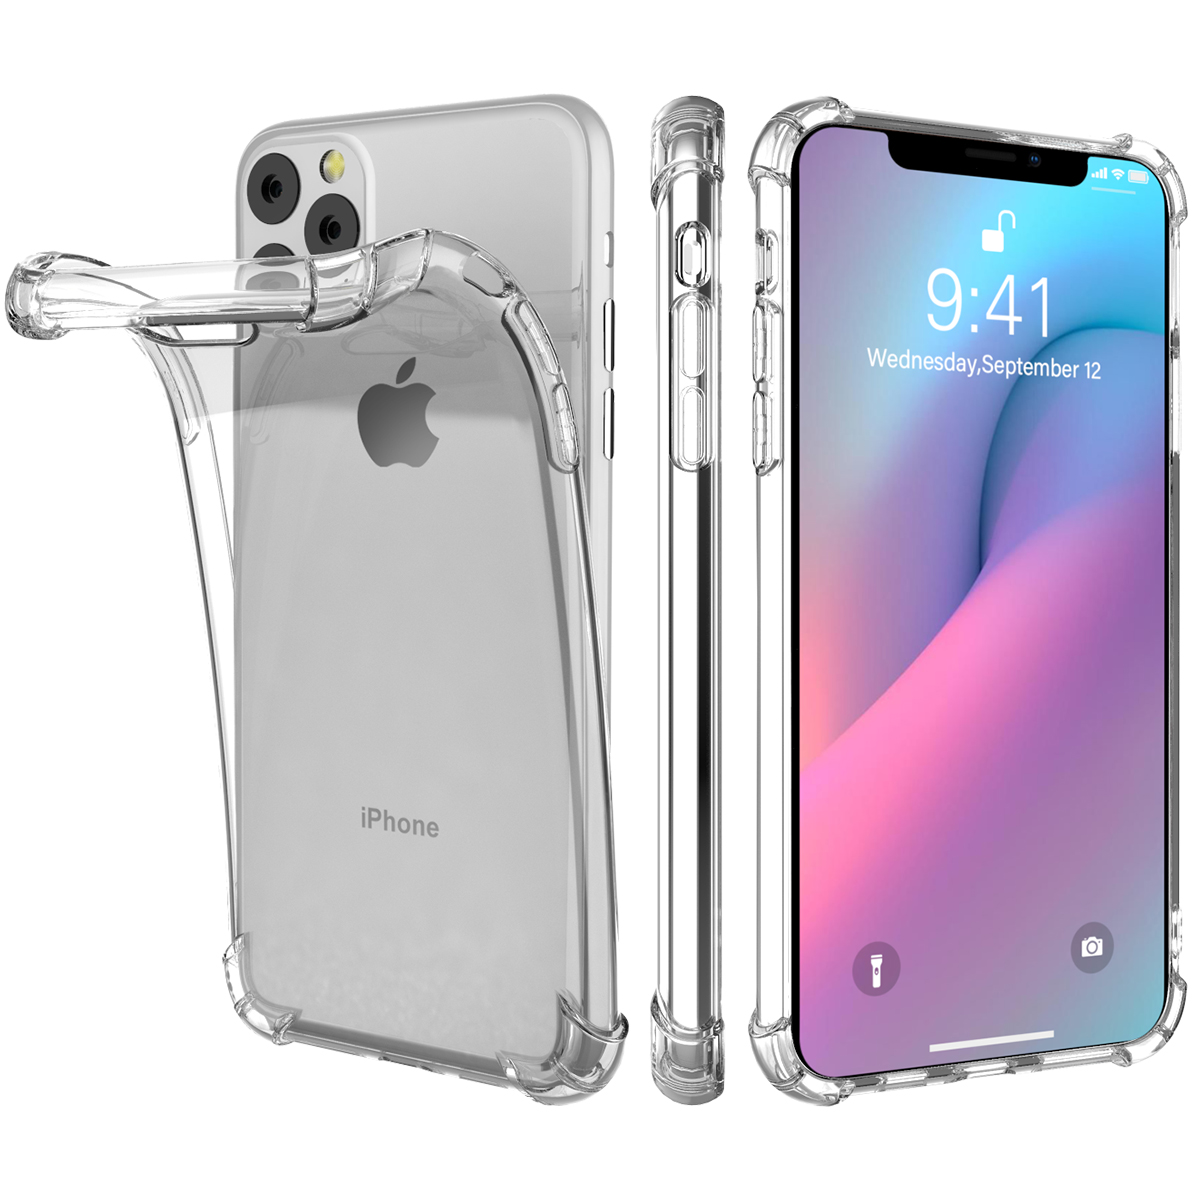 Gradient Soft TPU Case for iPhone 11/11 Pro/11 Pro Max 14